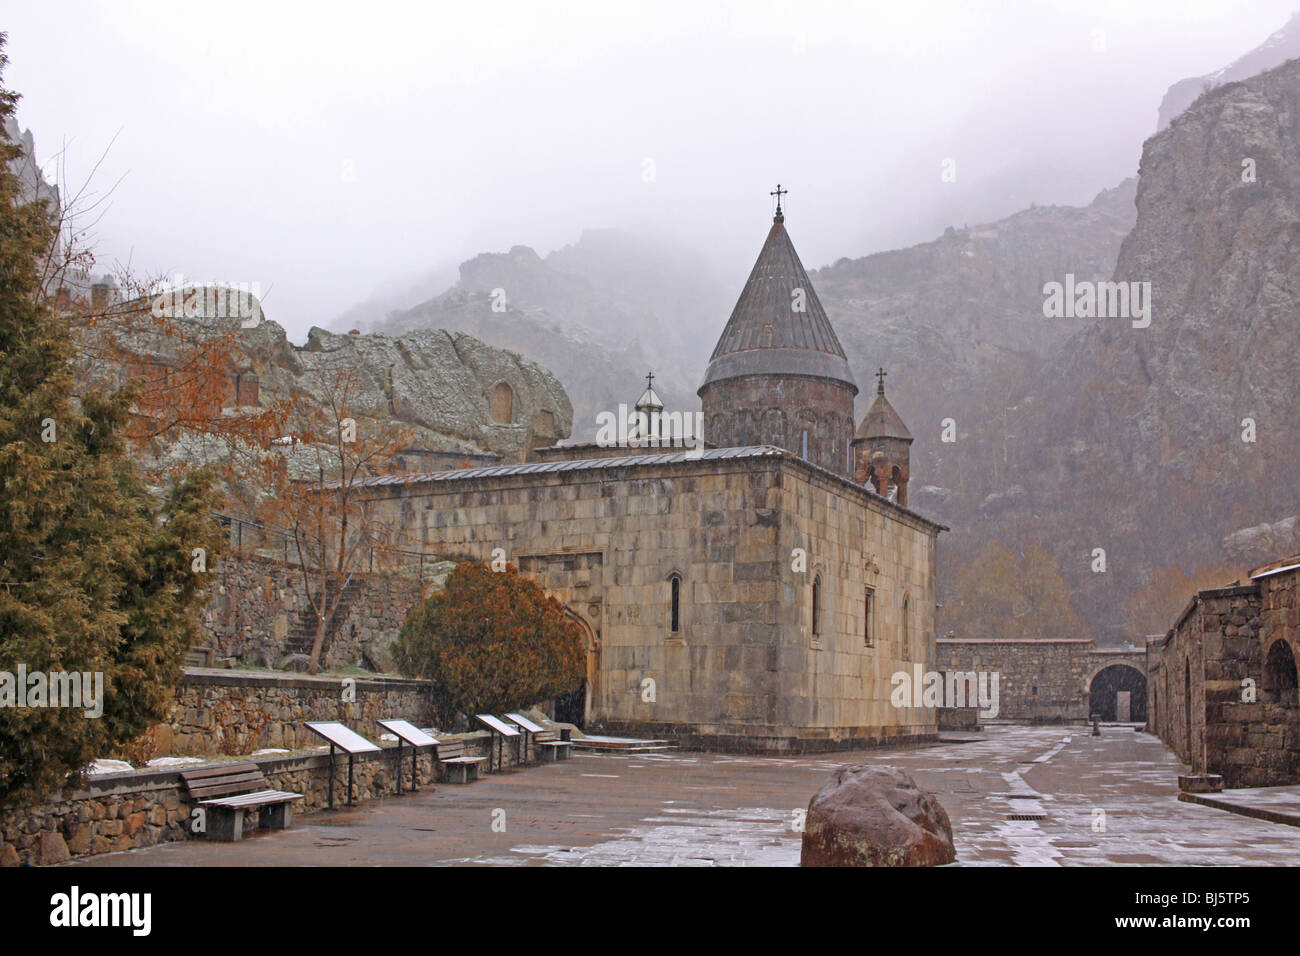 Armenia, The monastery of Geghard - Stock Image